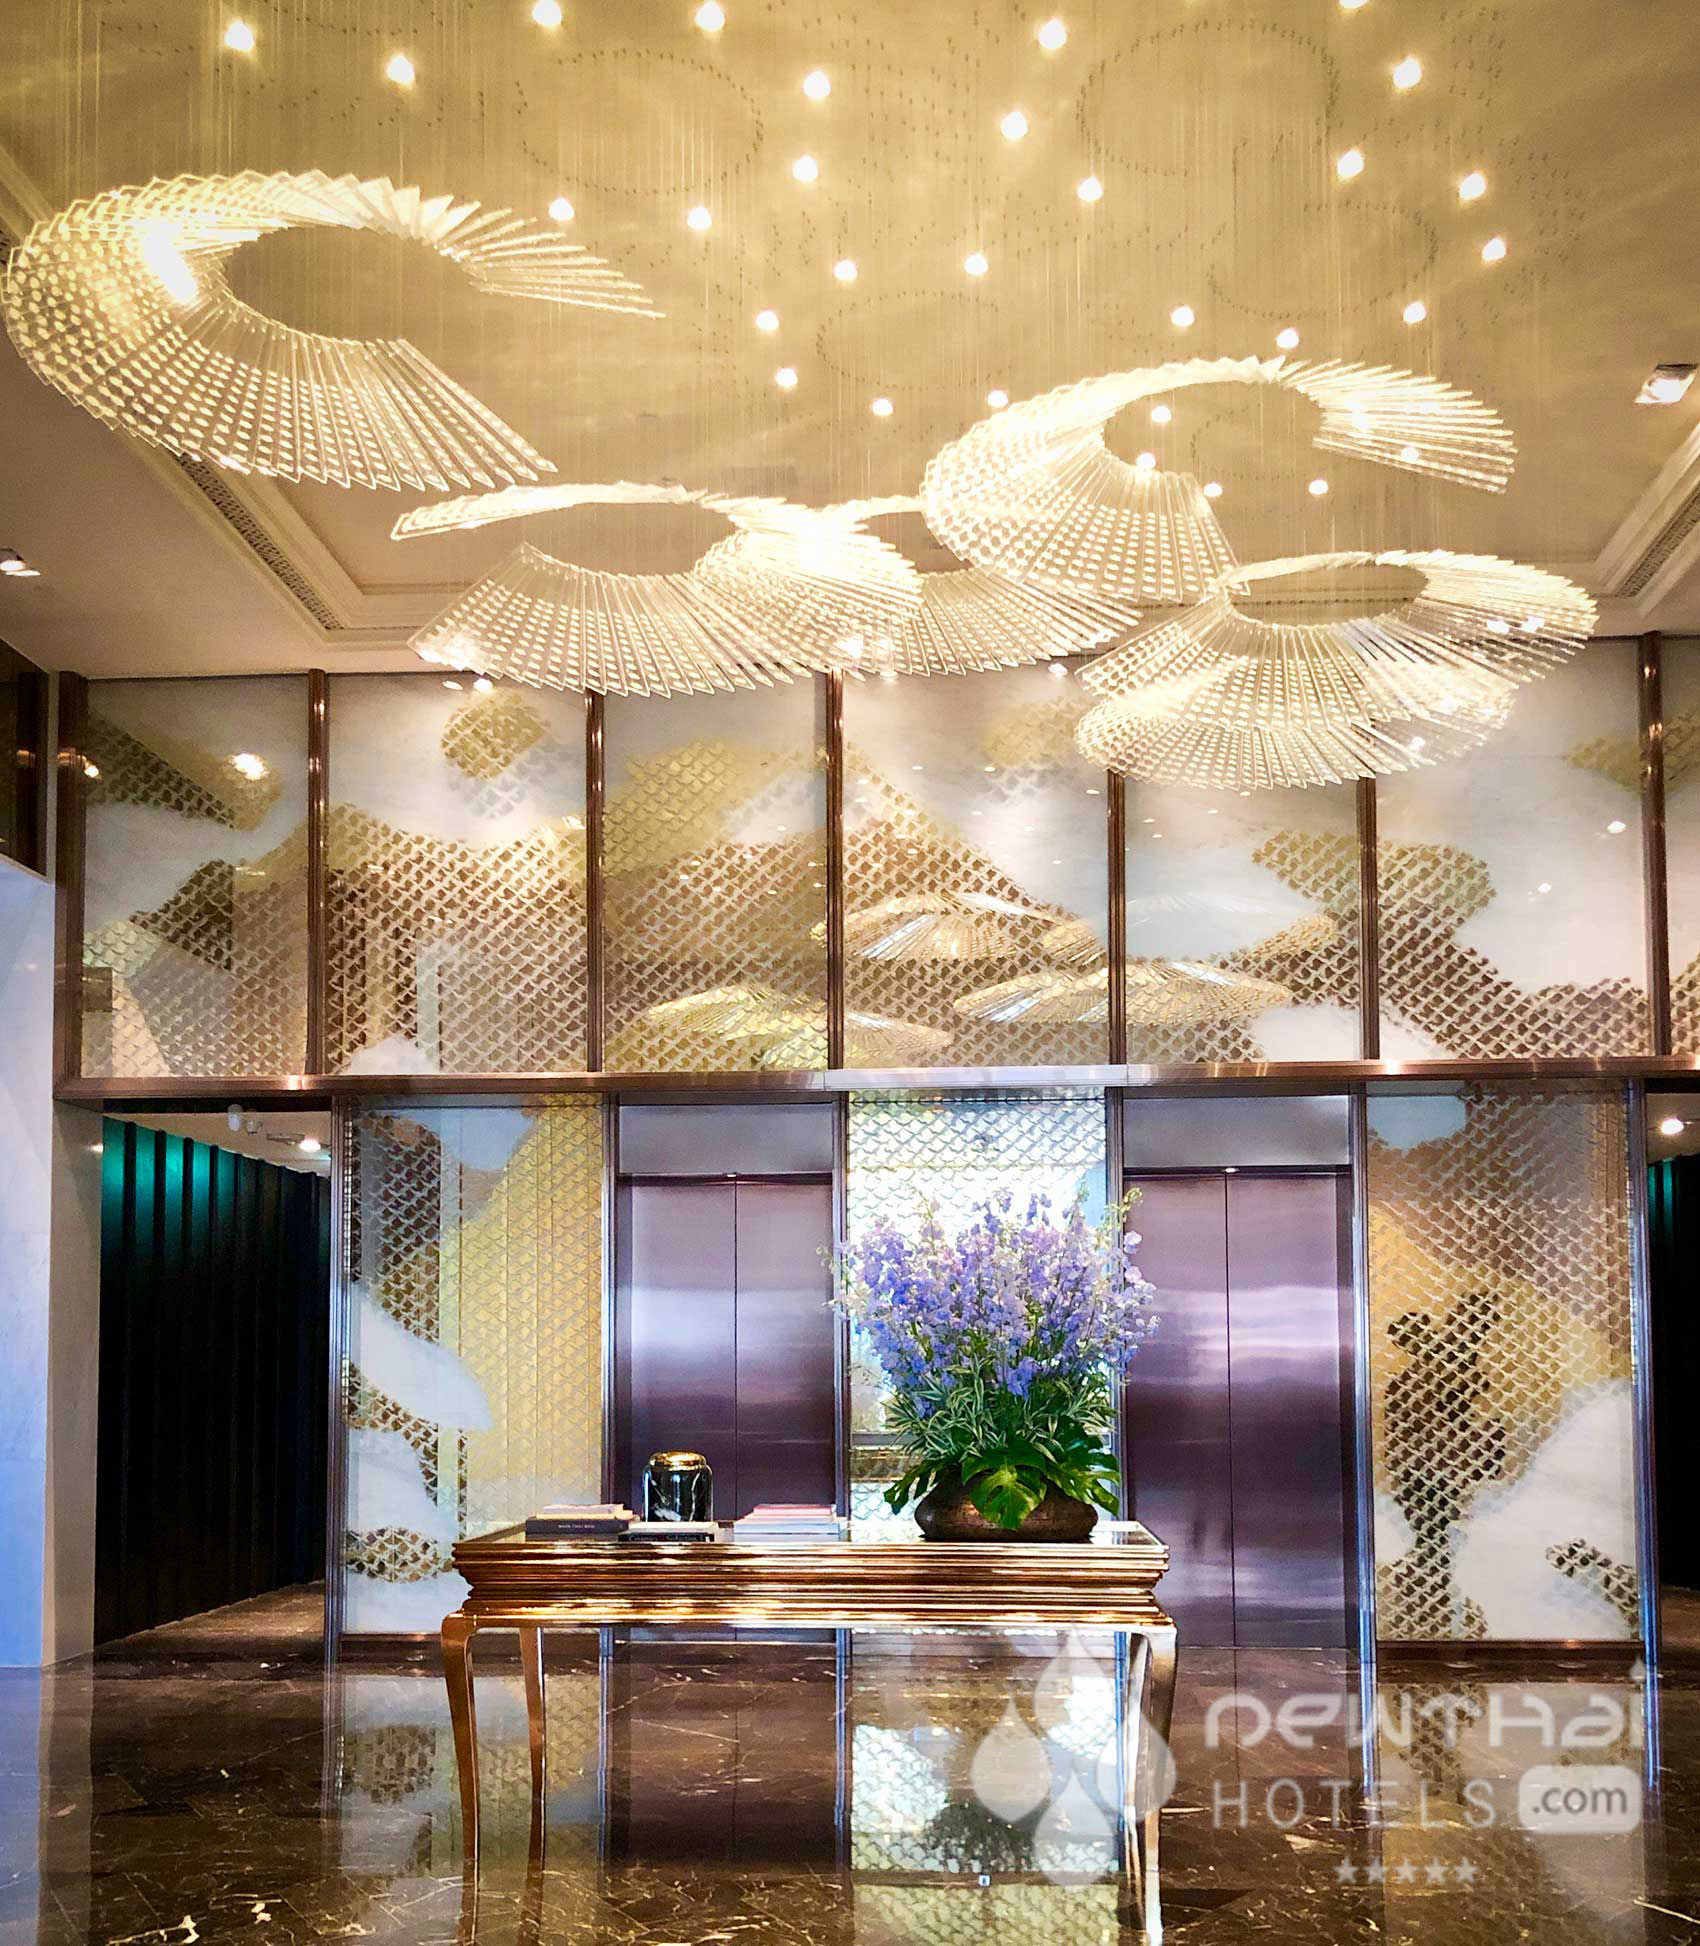 Lobby of the Rosewood Bangkok